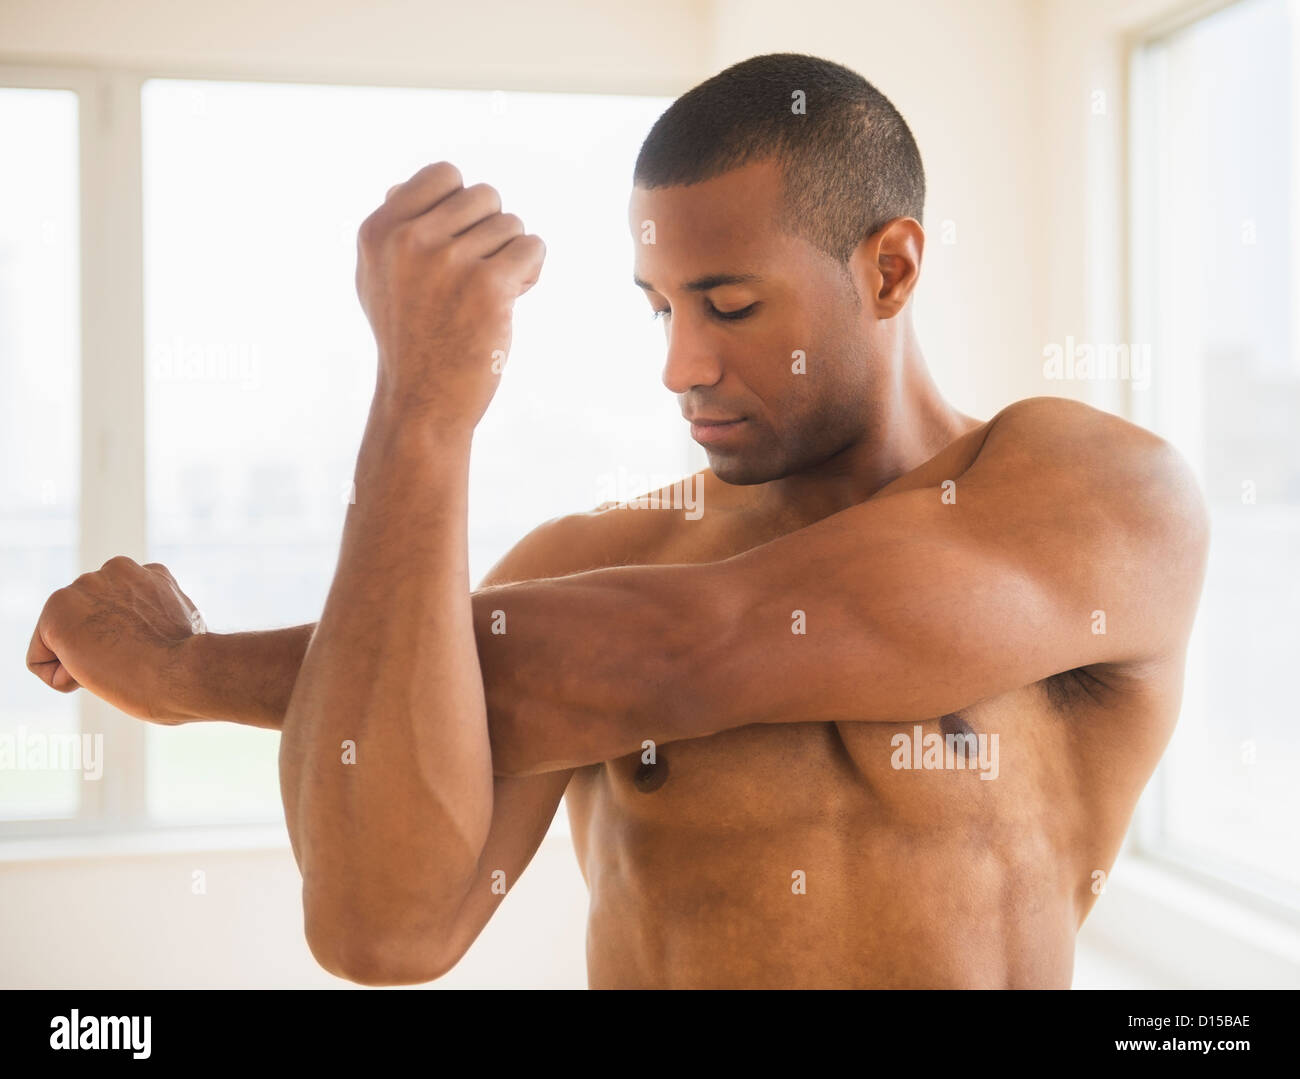 Man With No Shirt Stock Photos Man With No Shirt Stock Images Alamy